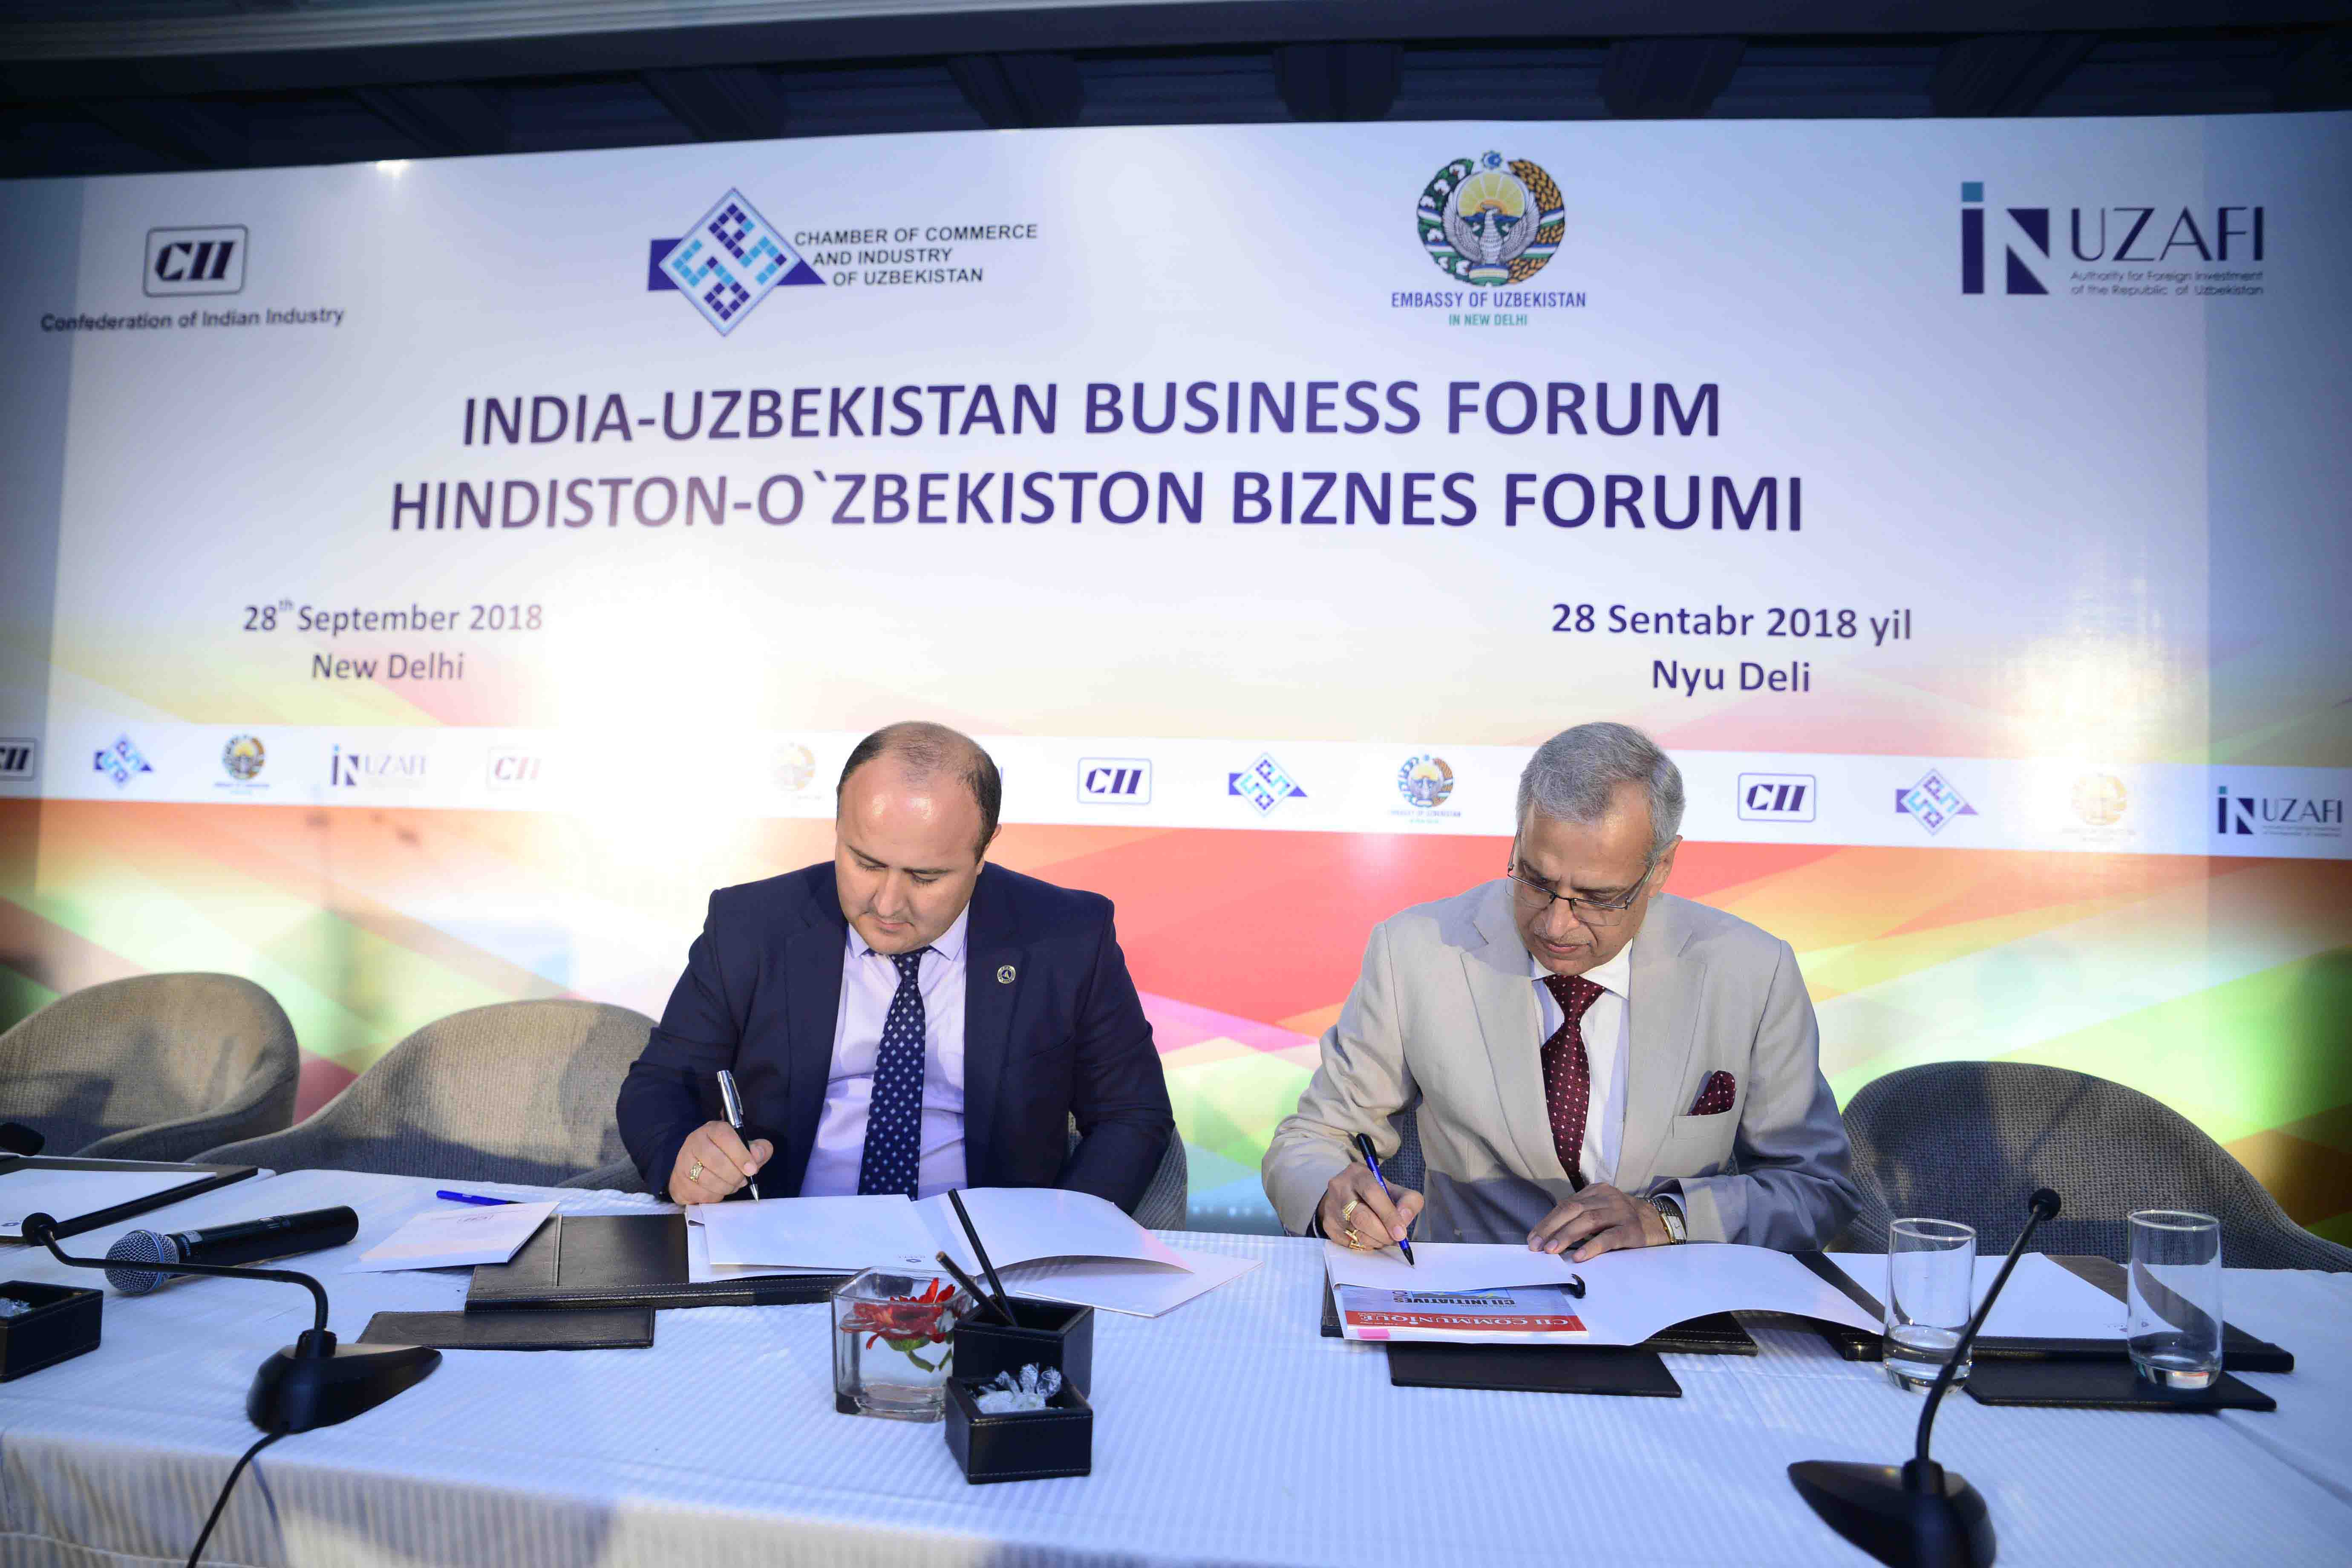 Mr Rajiv Arora, Executive Vice President, Muez Hest singing the MOU with Mr Avaz D Khodjiev, Deputy Governor of Sirdariya Region, Republic of Uzbekistan in the presence of the H.E. Mr S. Kholmusadov, Hon'ble Deputy Prime Minister, Republic of Uzbekistan and Mr Suresh Prabhu, Hon'ble Minister of Commerce & Industry and Civil Aviation, Government of India.